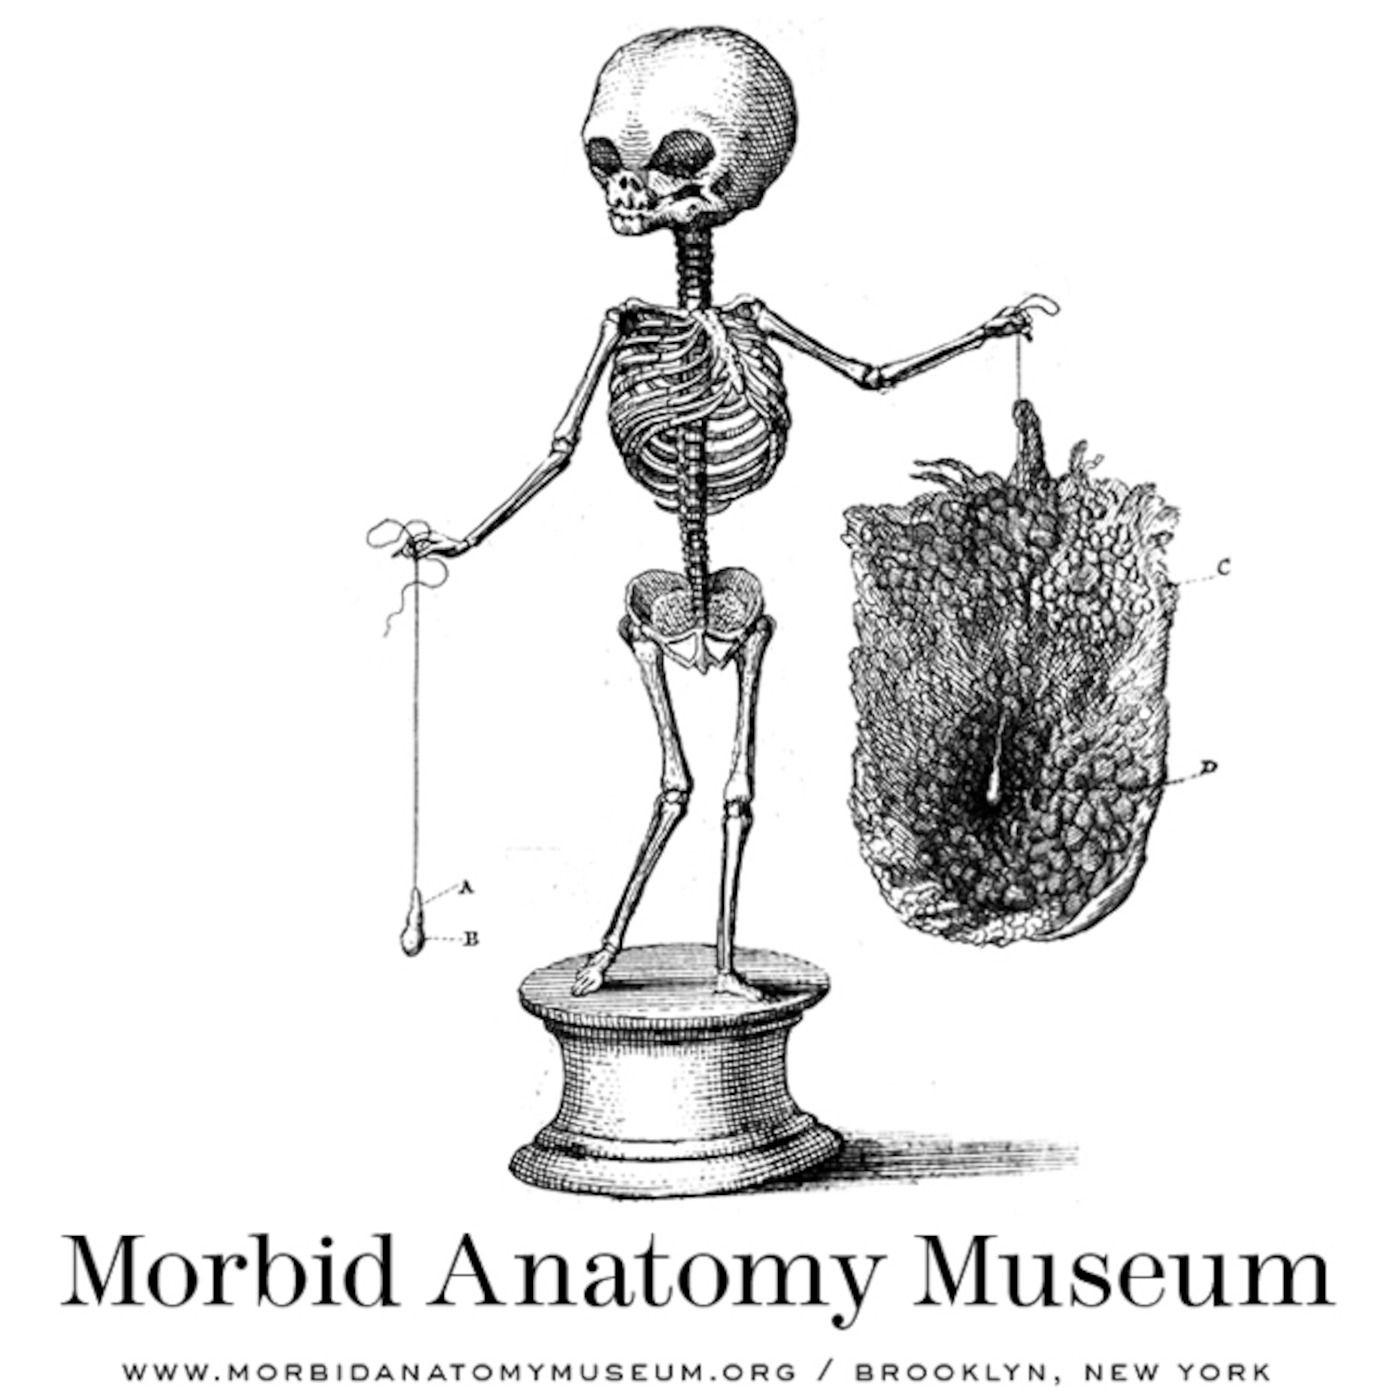 The Morbid Anatomy Transmission